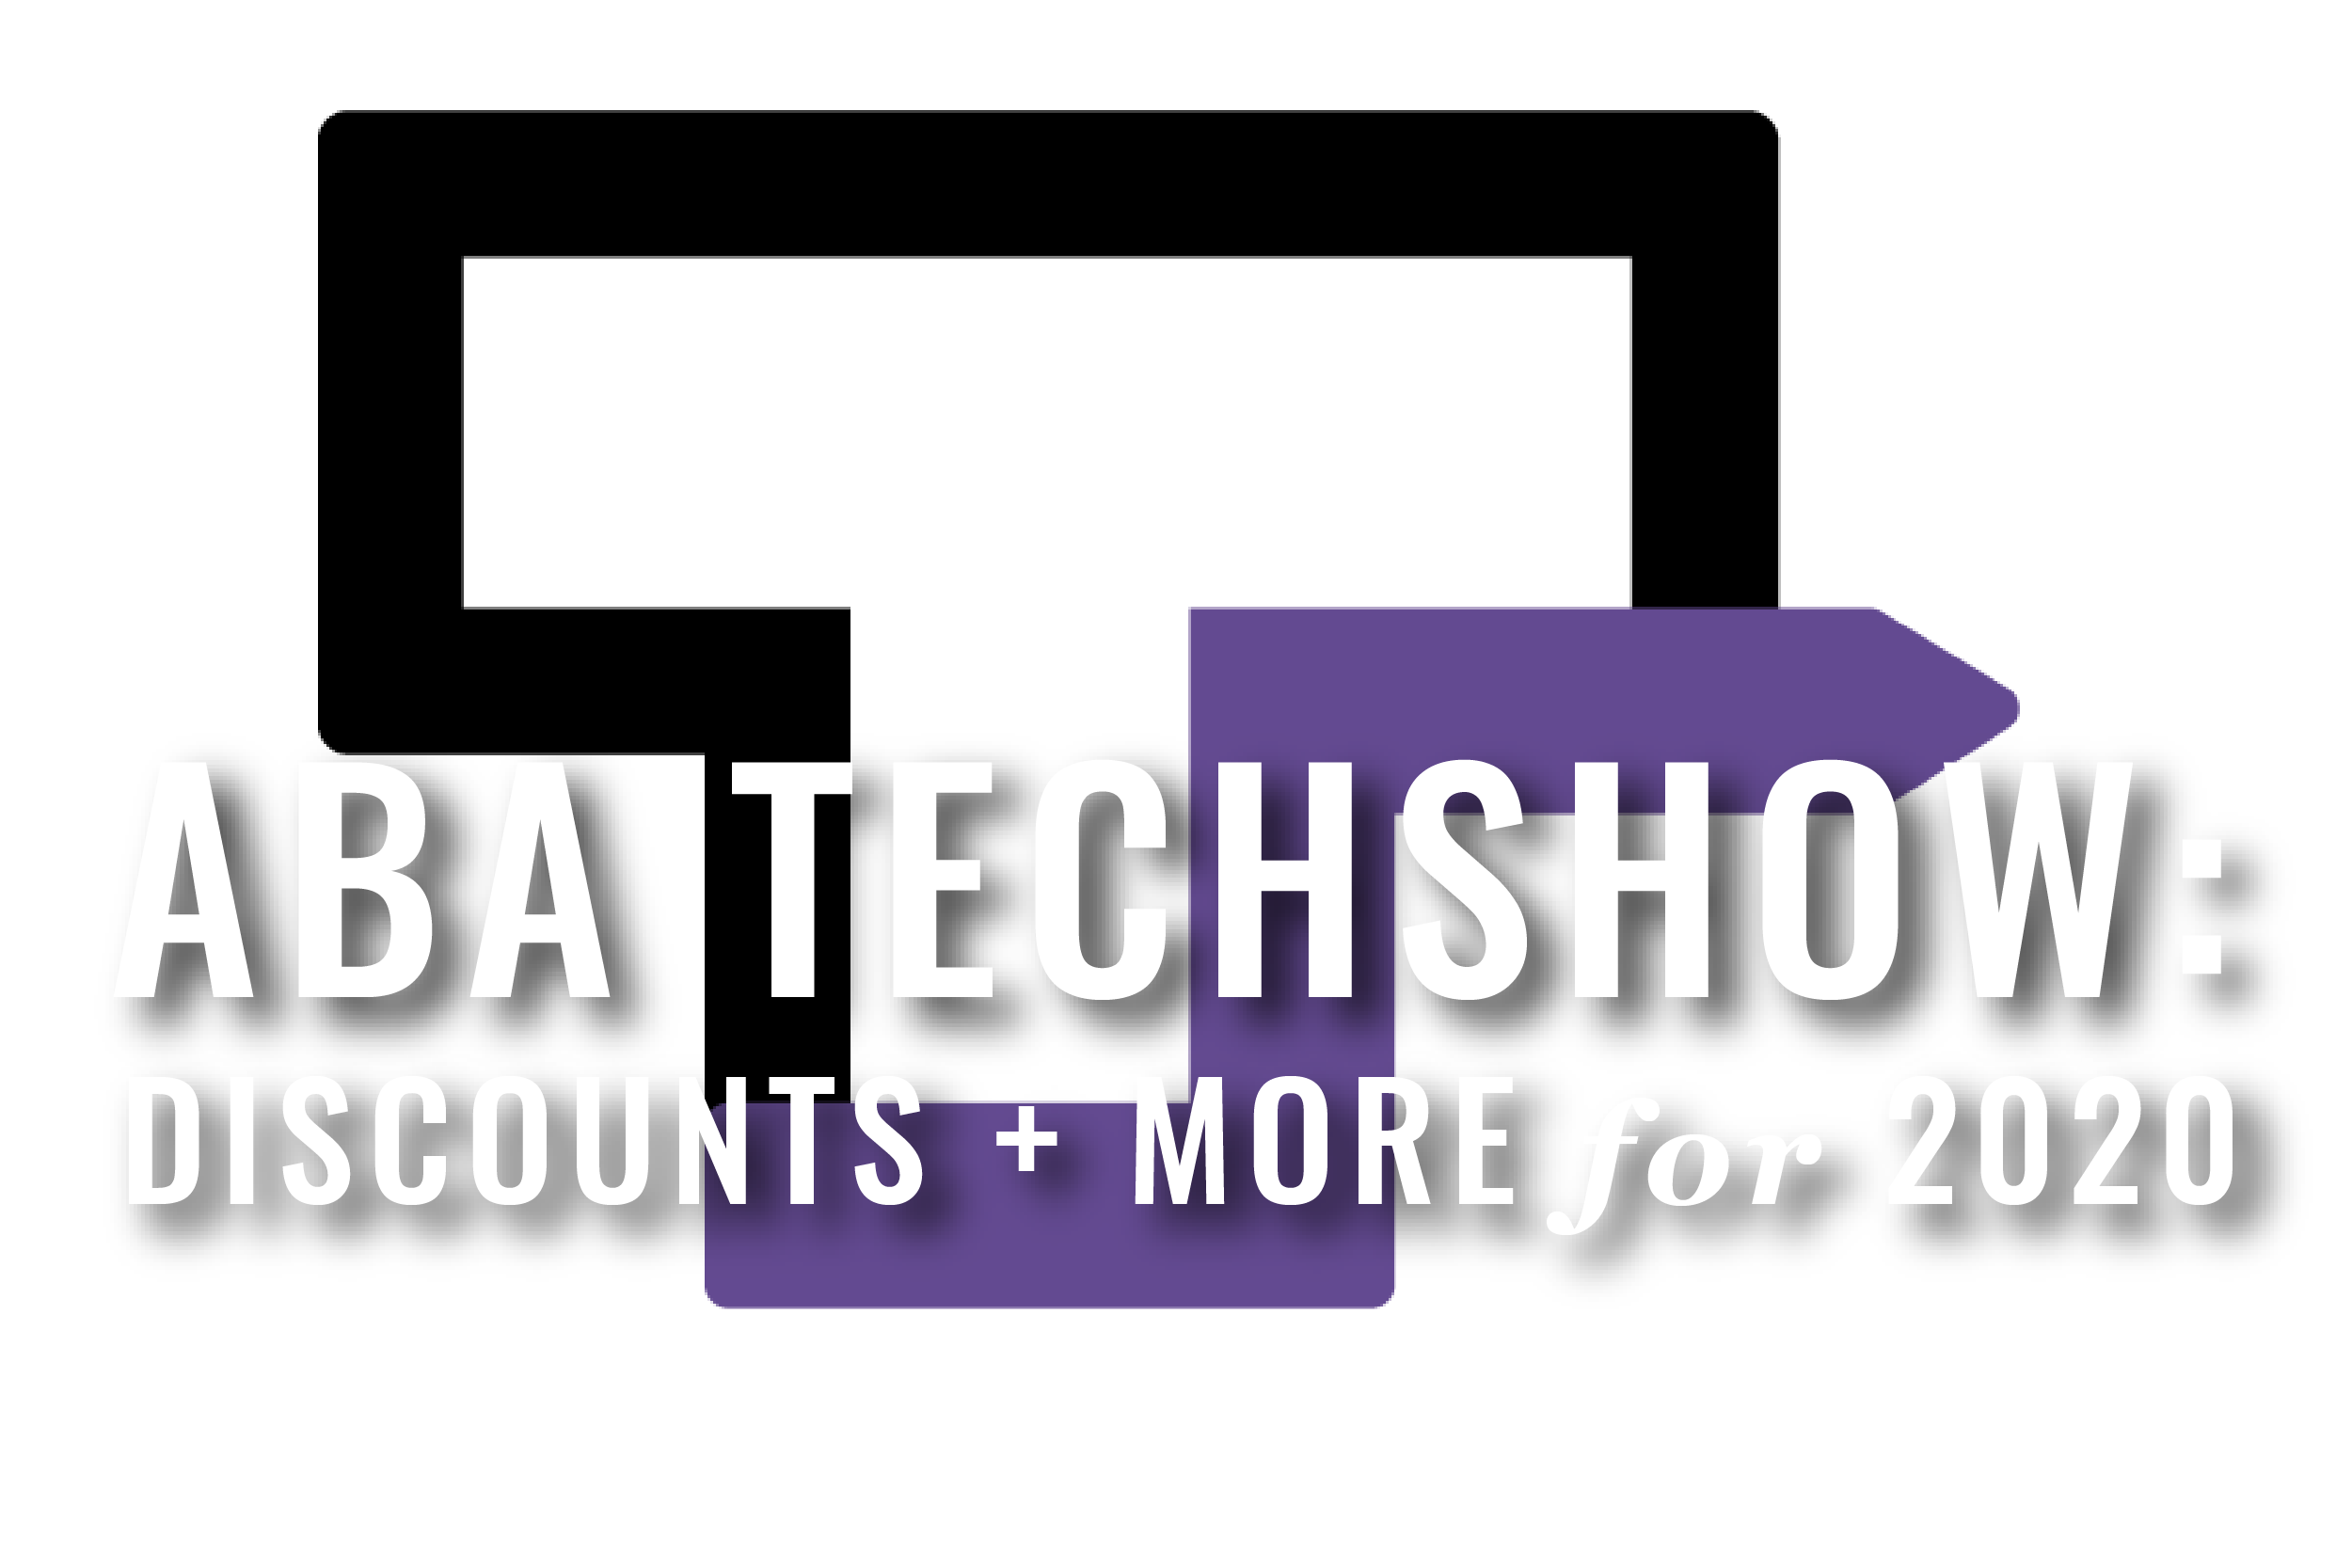 ABA TECHSHOW Logo, The Letter T With An Arrow